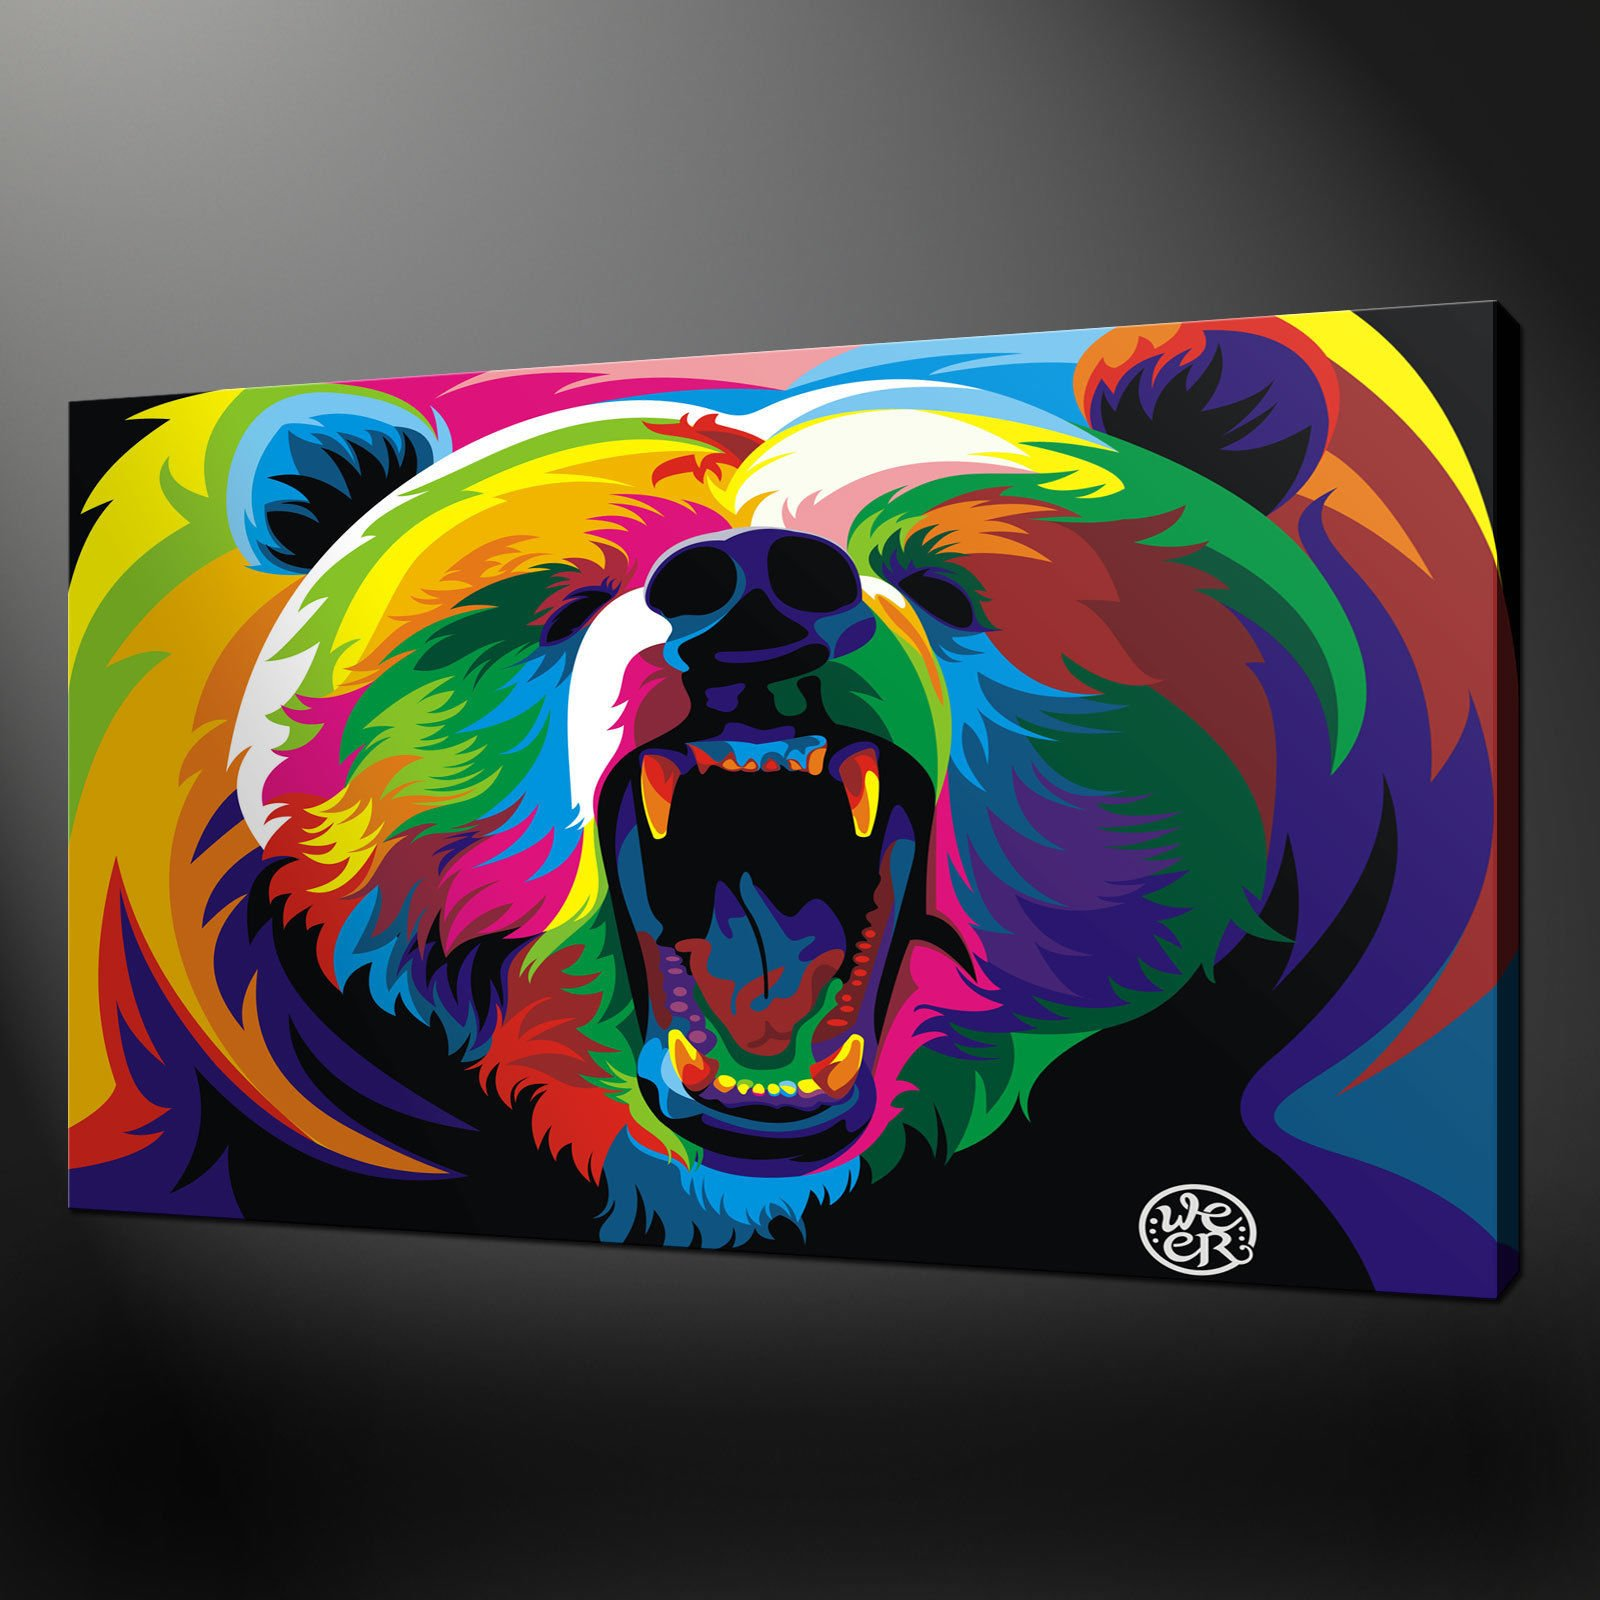 ABSTRACT BEAR PREMIUM QUALITY CANVAS PRINT PICTURE WALL ART DESIGN FREE UK PP